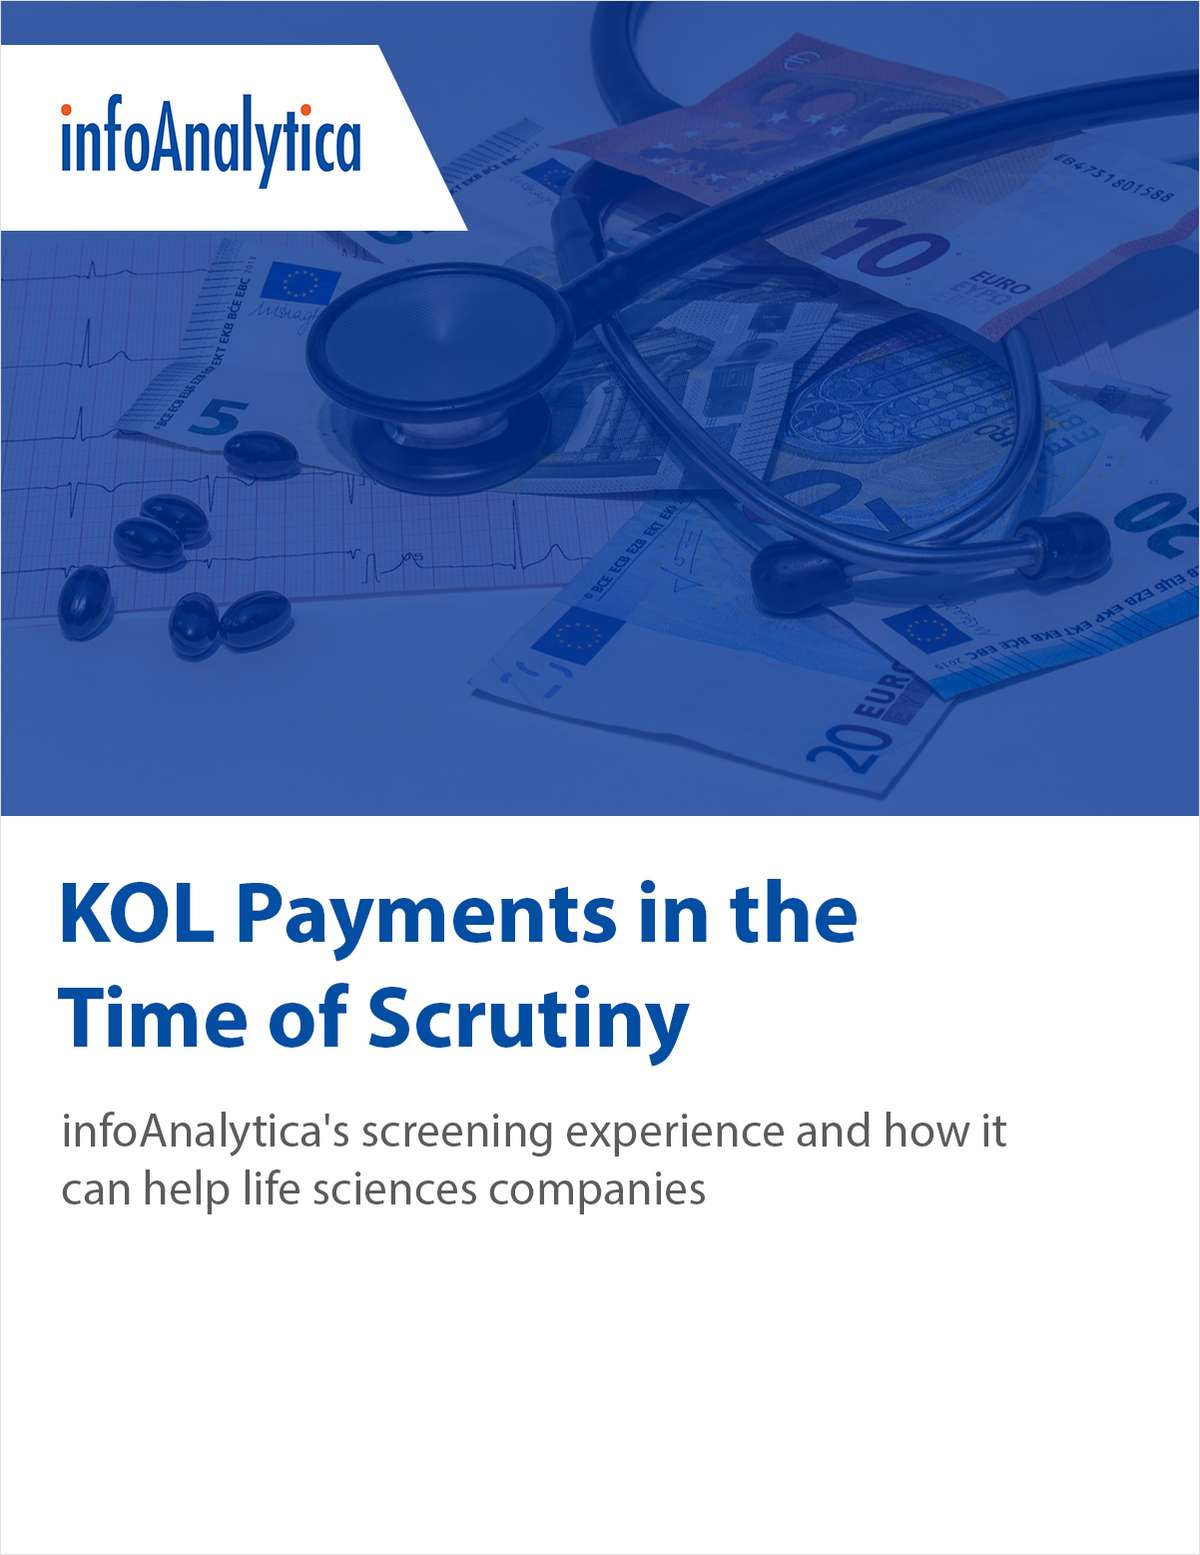 KOL Payments in the Time of Scrutiny